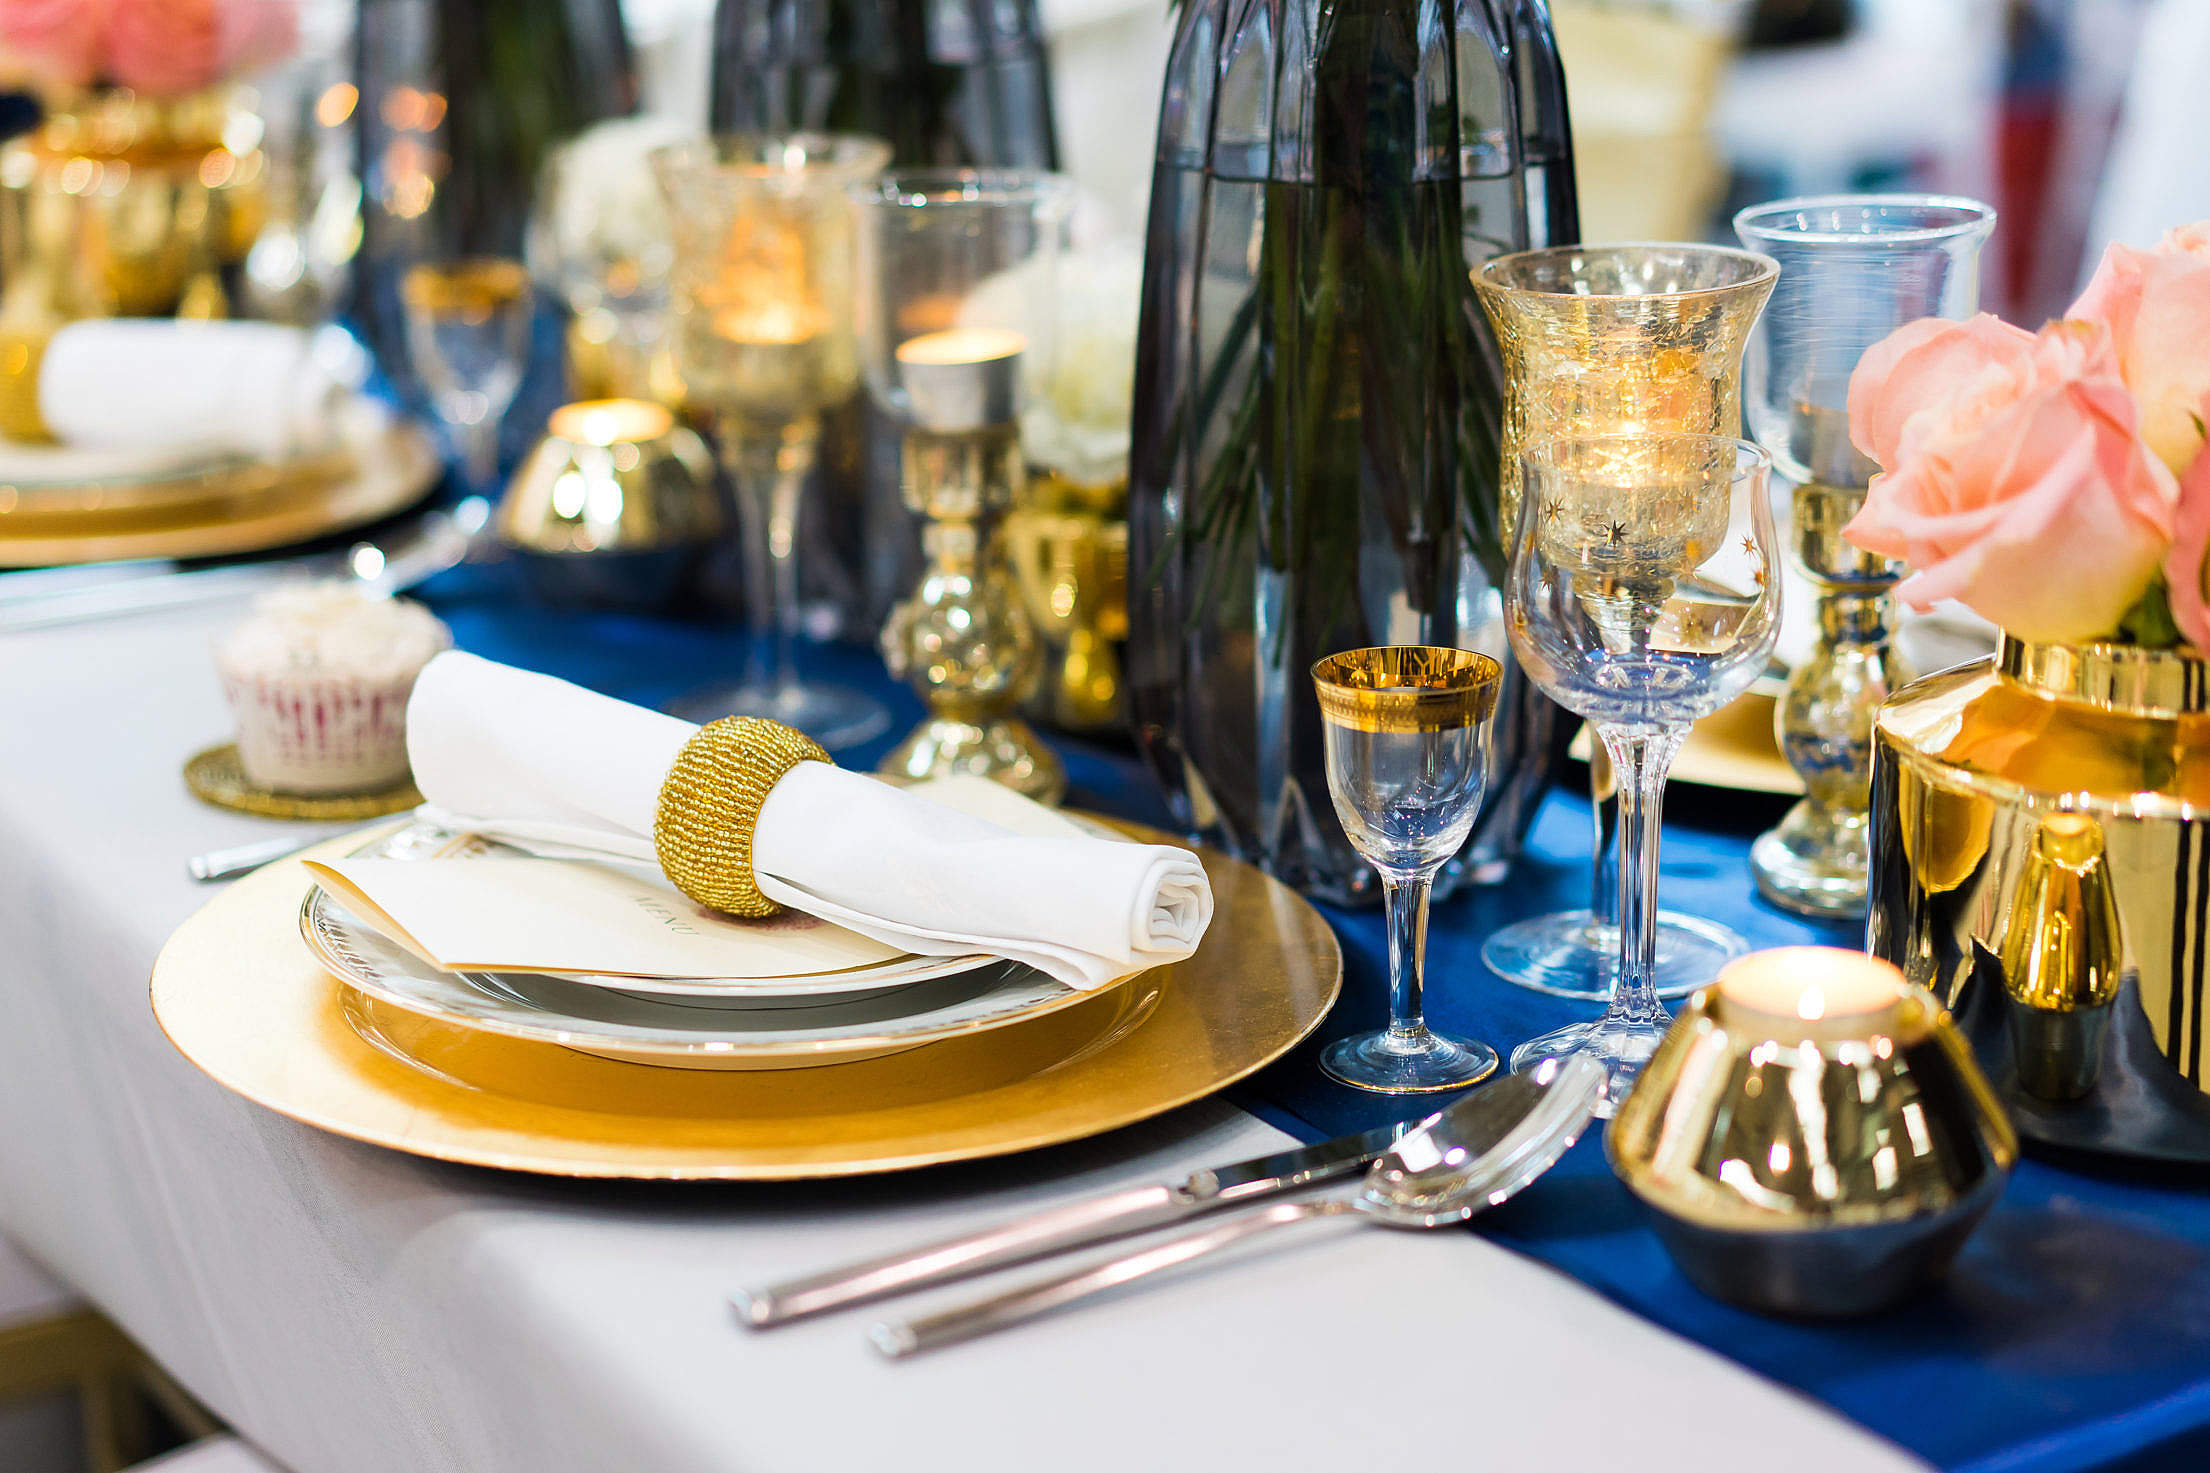 Wedding Lunch Table Setting in Blue and Gold Color Free Stock Photo